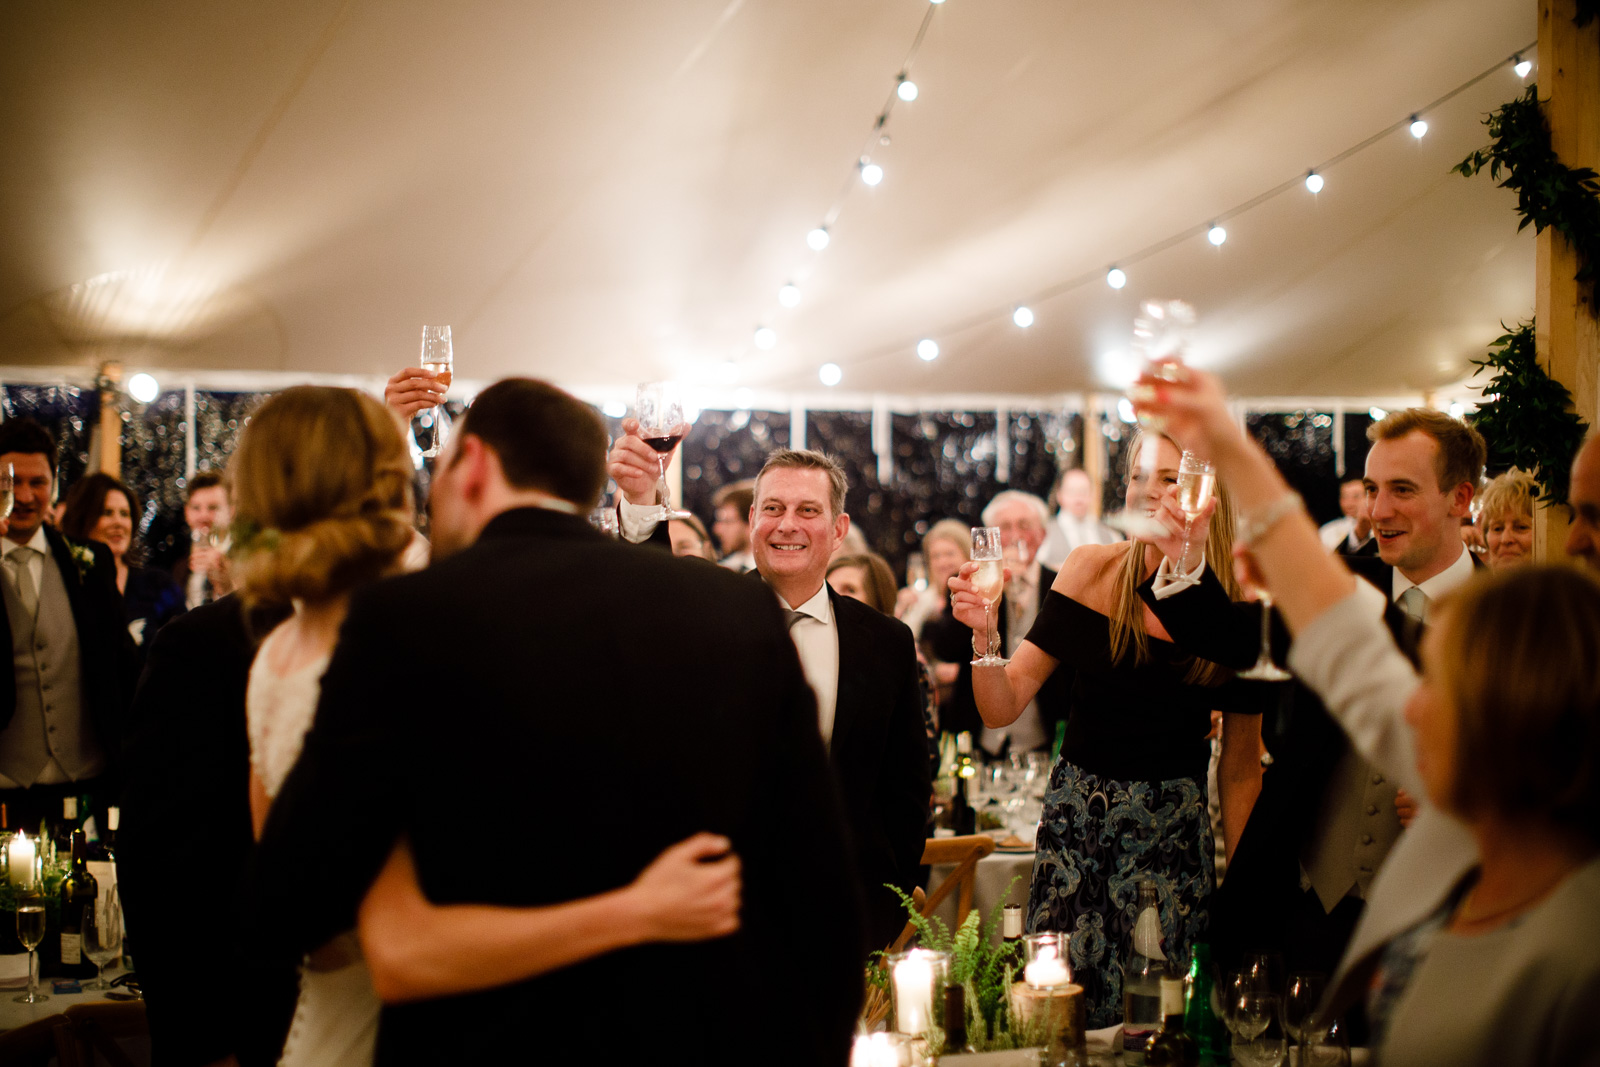 Emily & Ed's PapaKåta Sperry Tent wedding at Buckhurst Park captured by Tony Hart Photography: Toast To The Couple